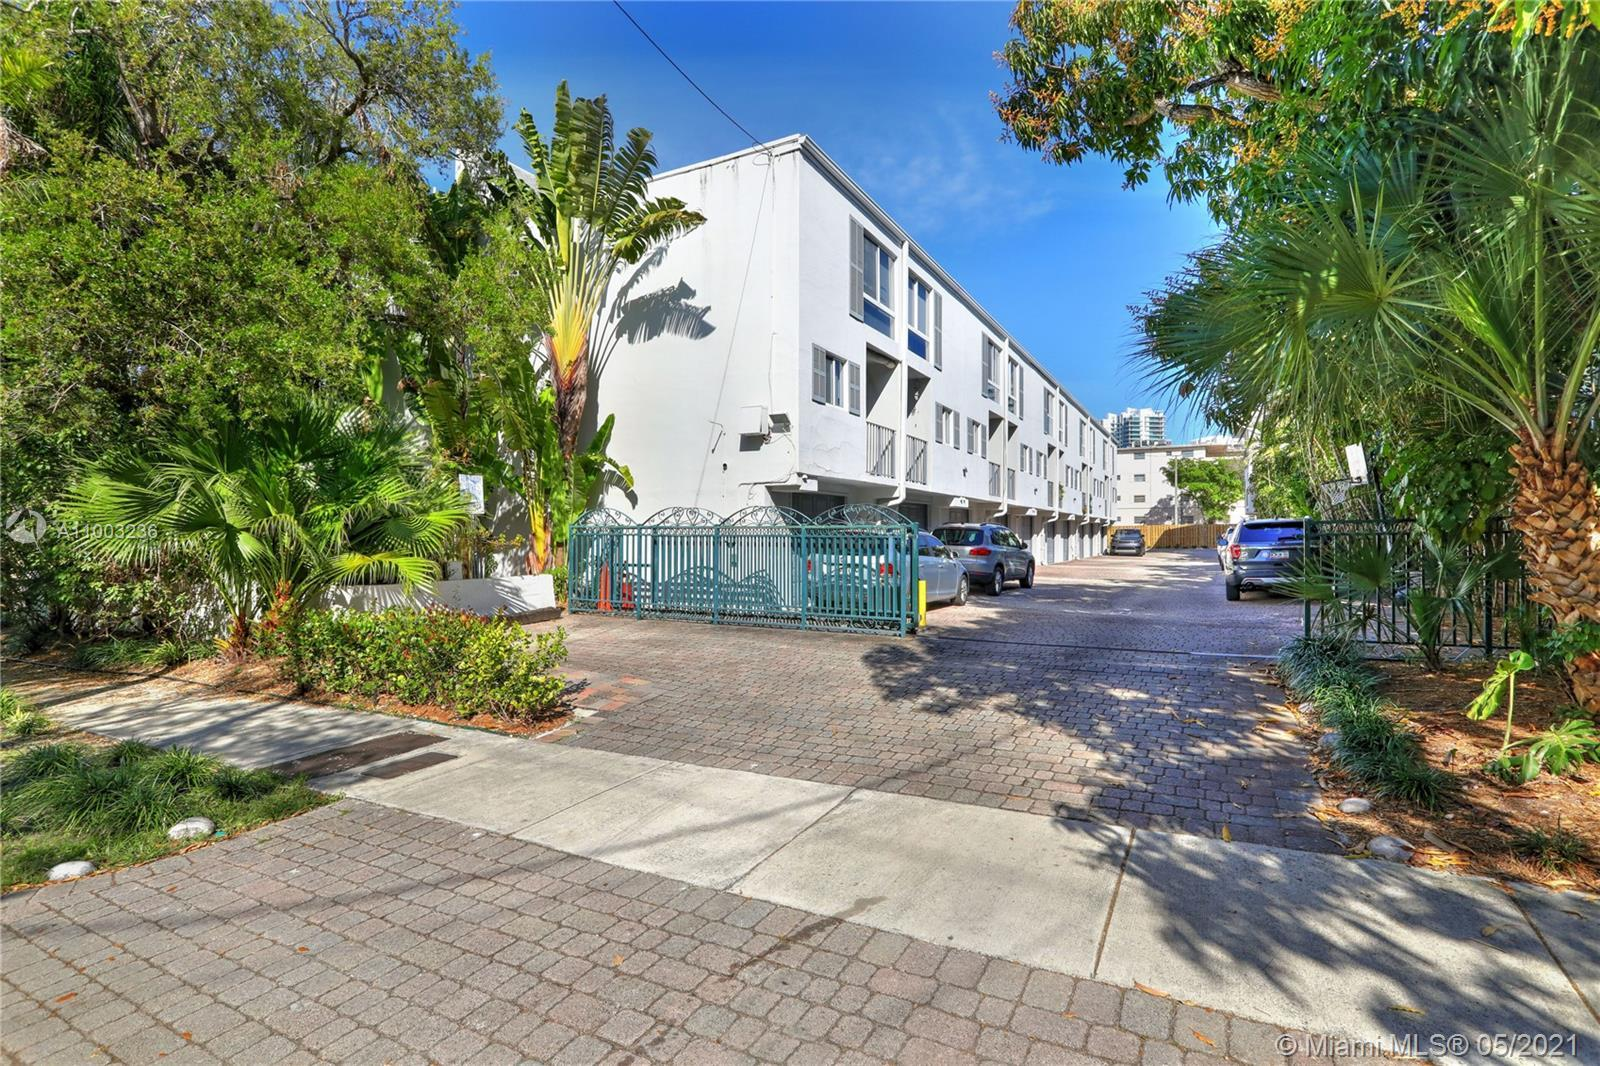 Walk, bike, or scooter to everything from this Coconut Grove townhome! Peppertree Village is a lushl